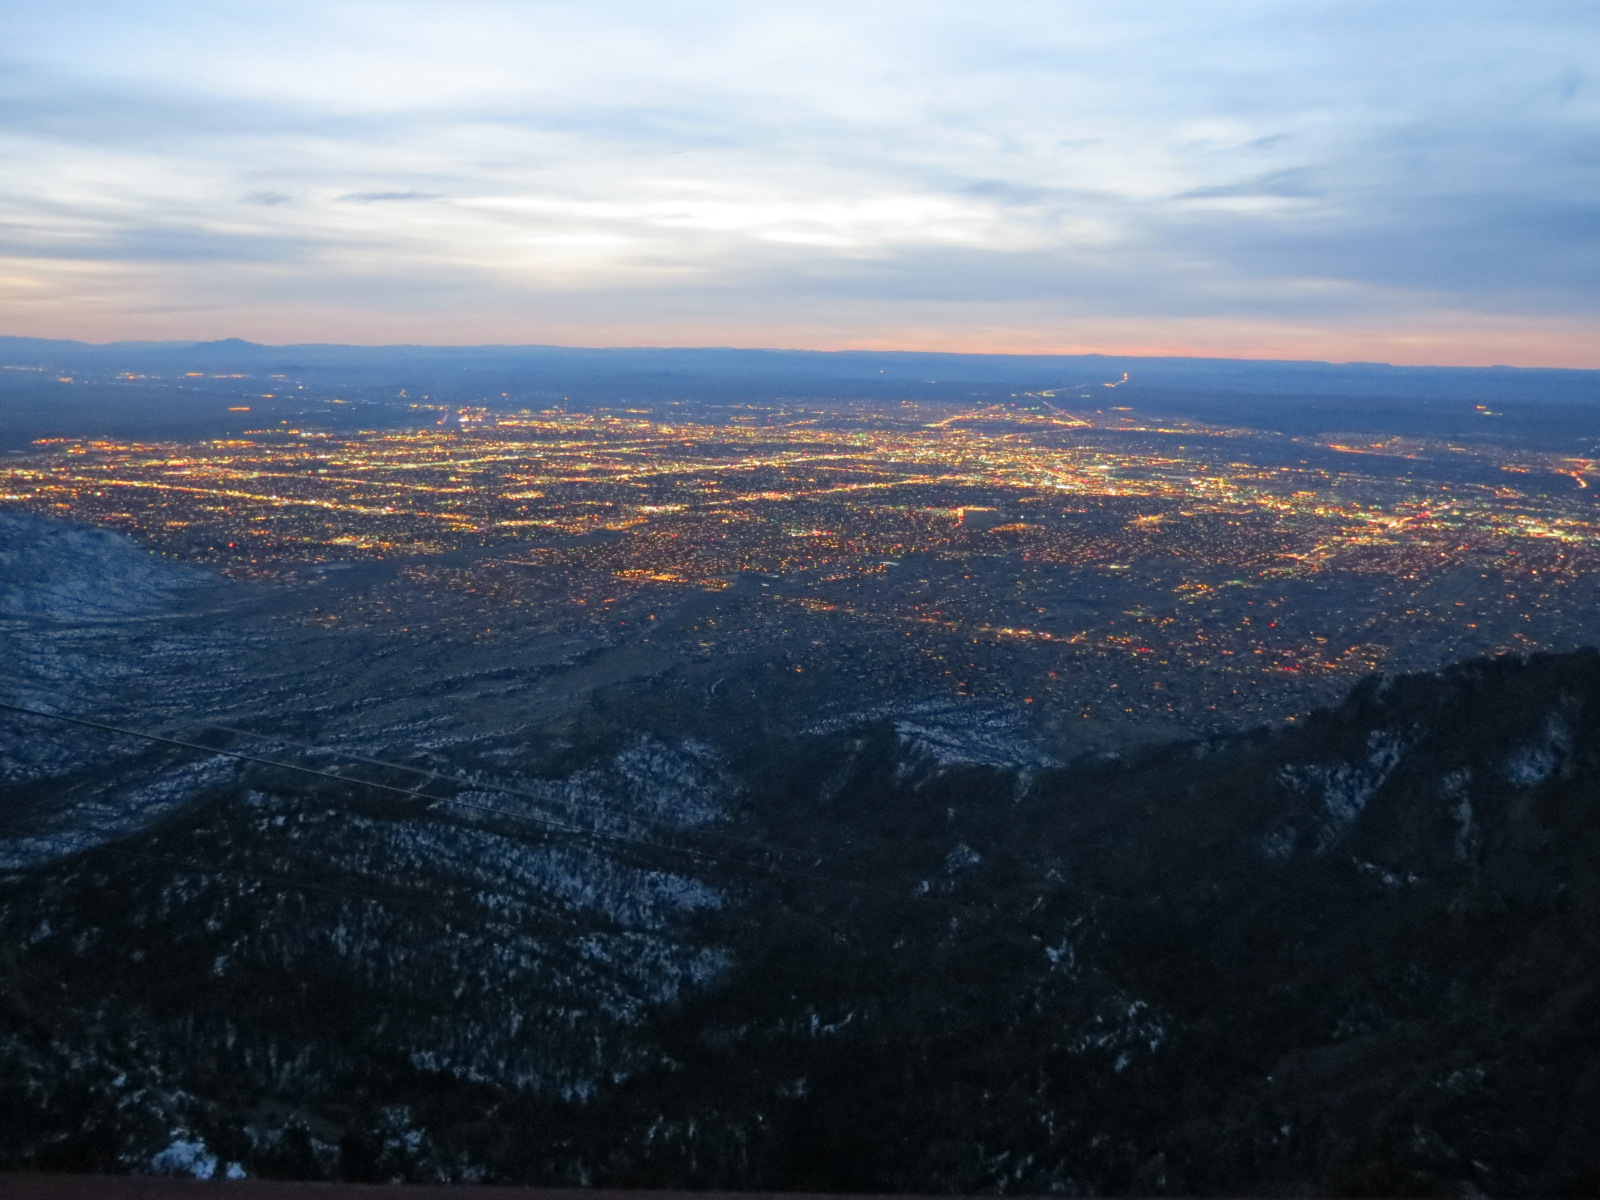 Night time looking down on Albuquerque